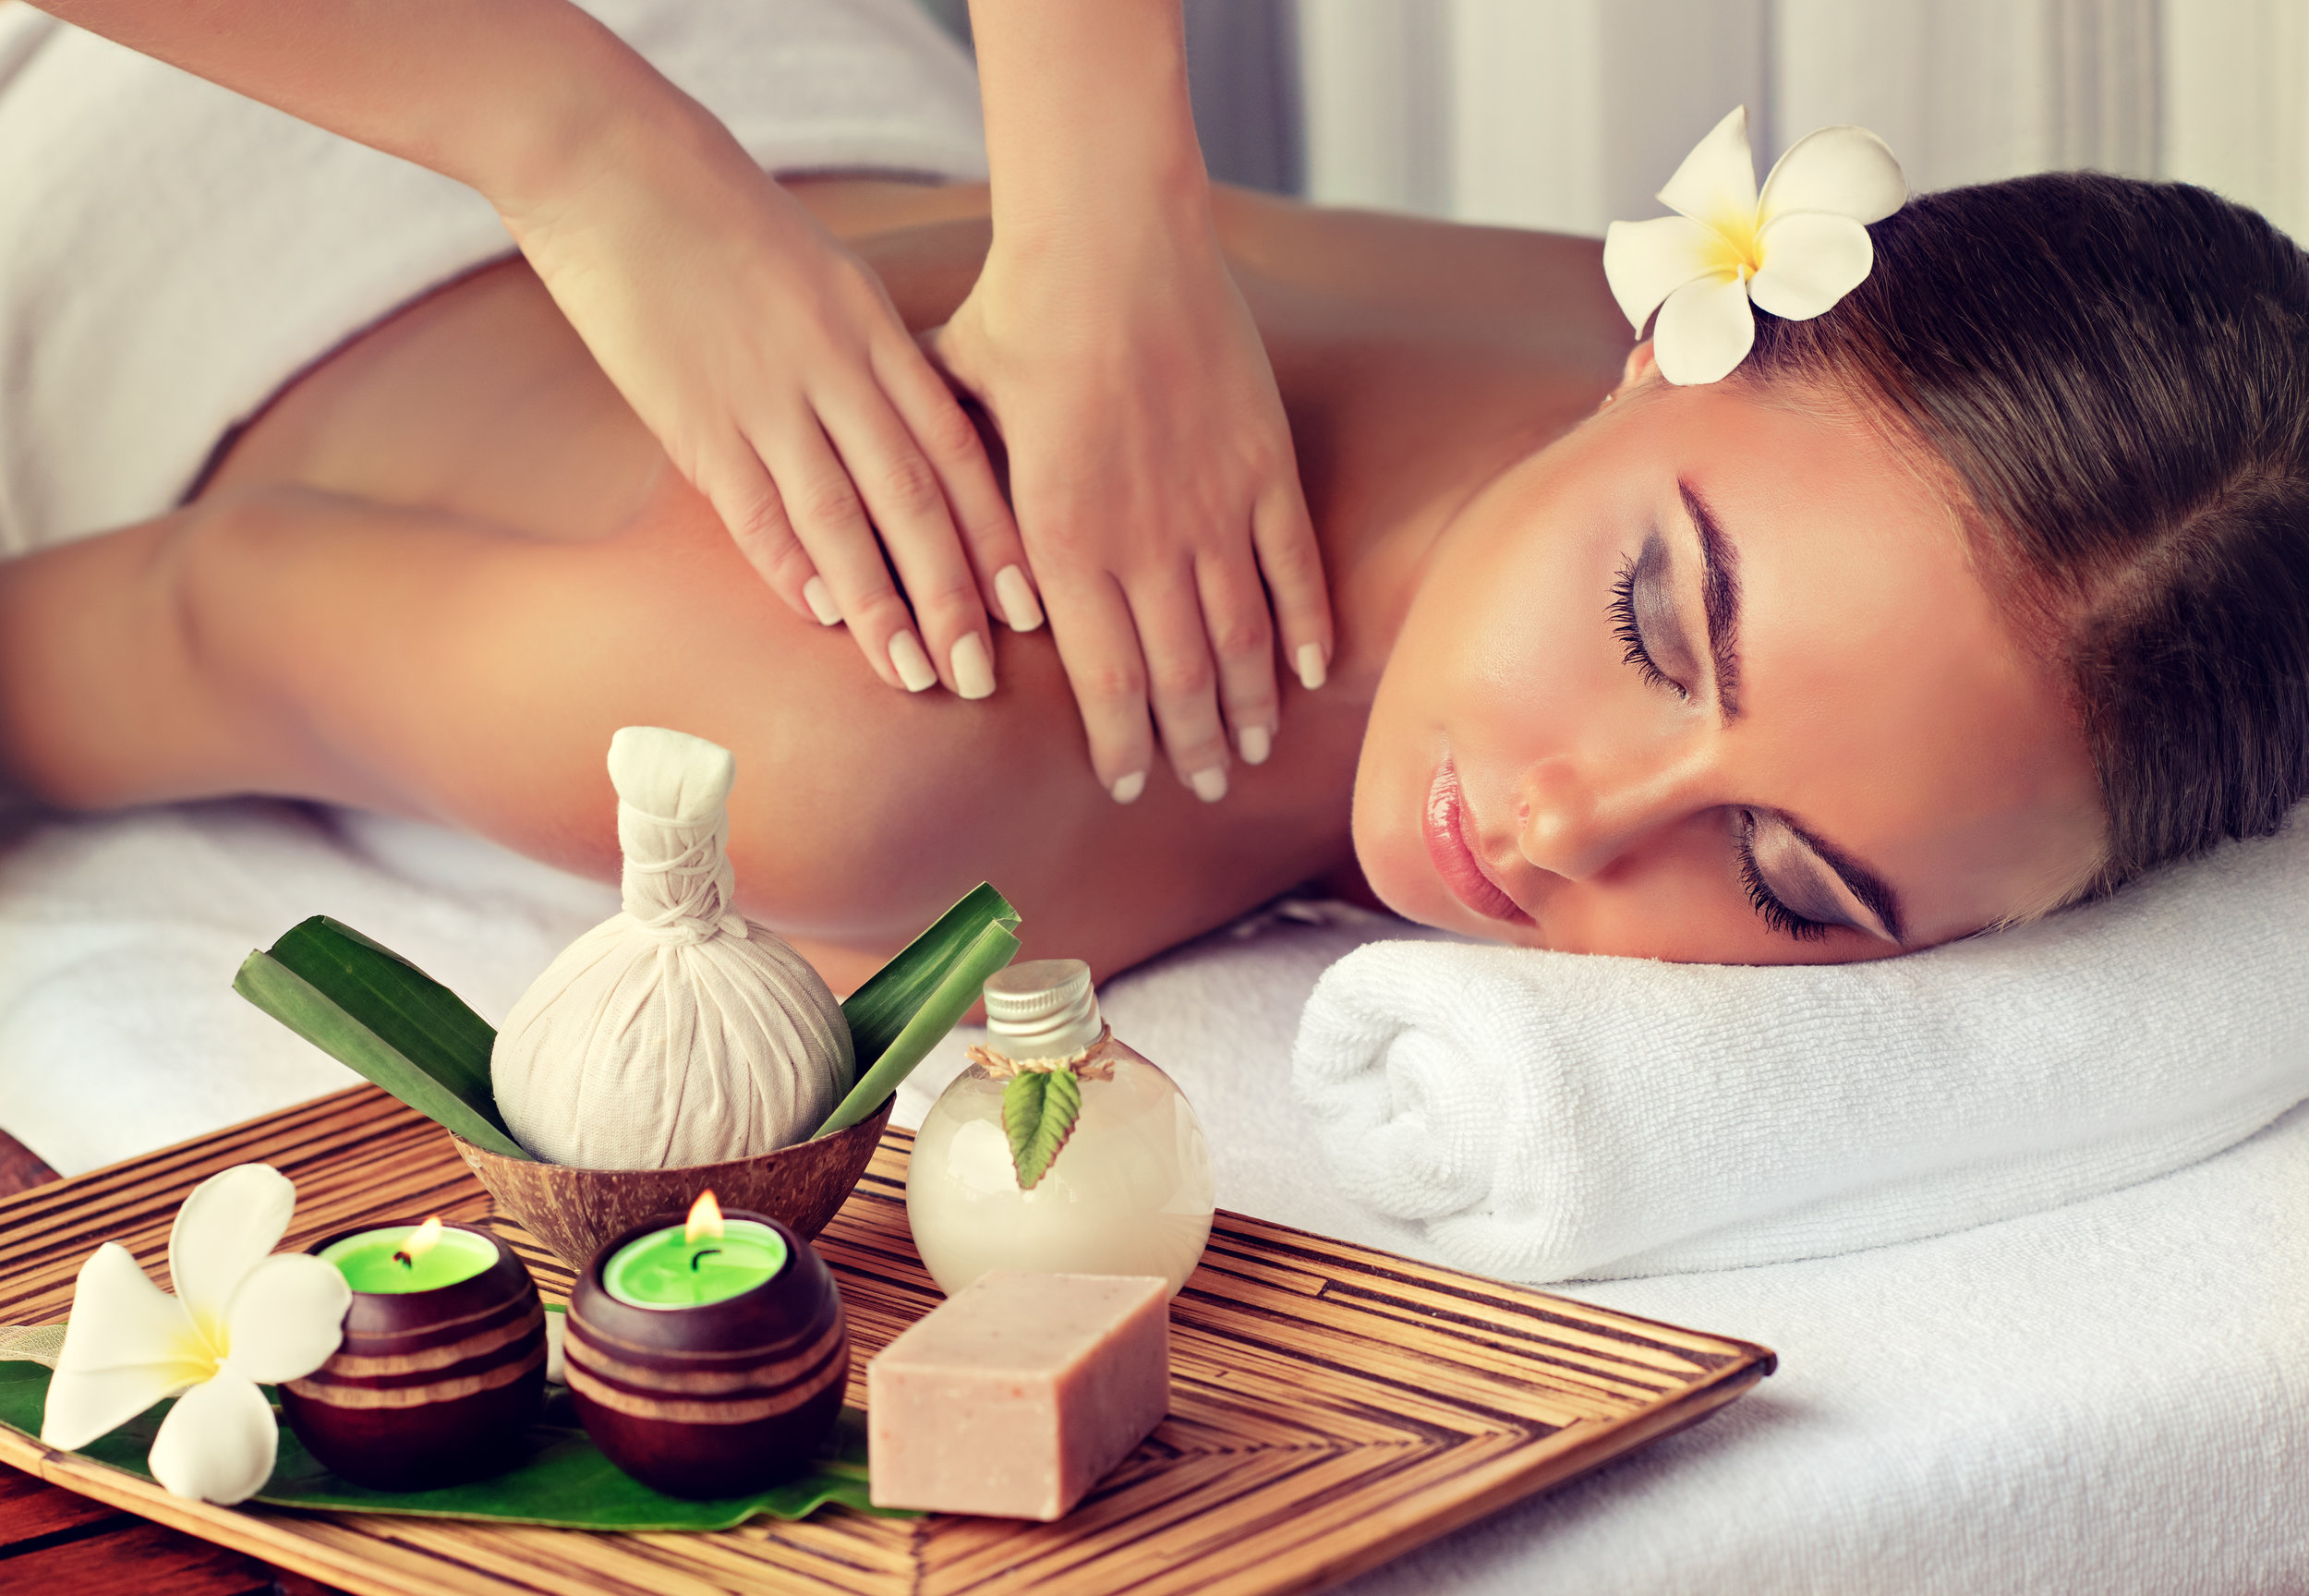 - Beauty and spas